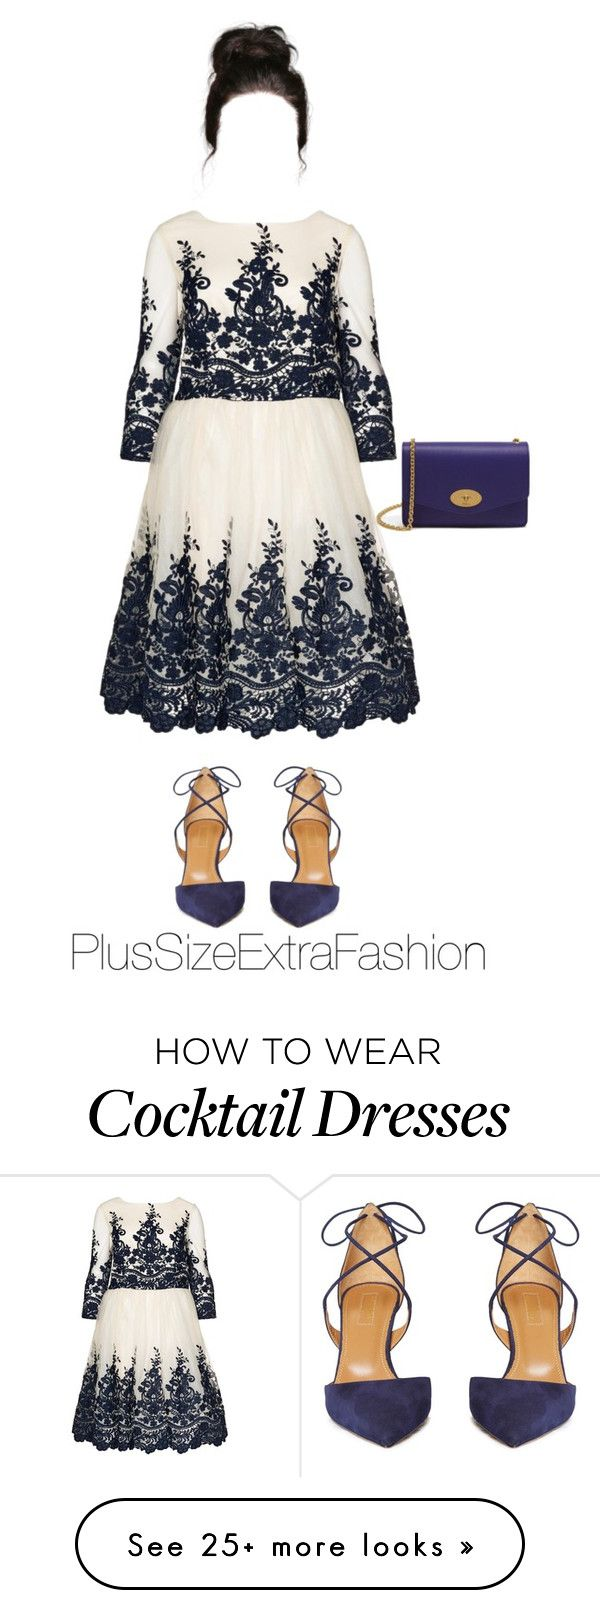 """Plus Size Fall Formal Outfit ft. Navy"" by plussizeextrafashion on Polyvore featuring Aquazzura, Mulberry, Fall, plussize and plussizeextrafashion"